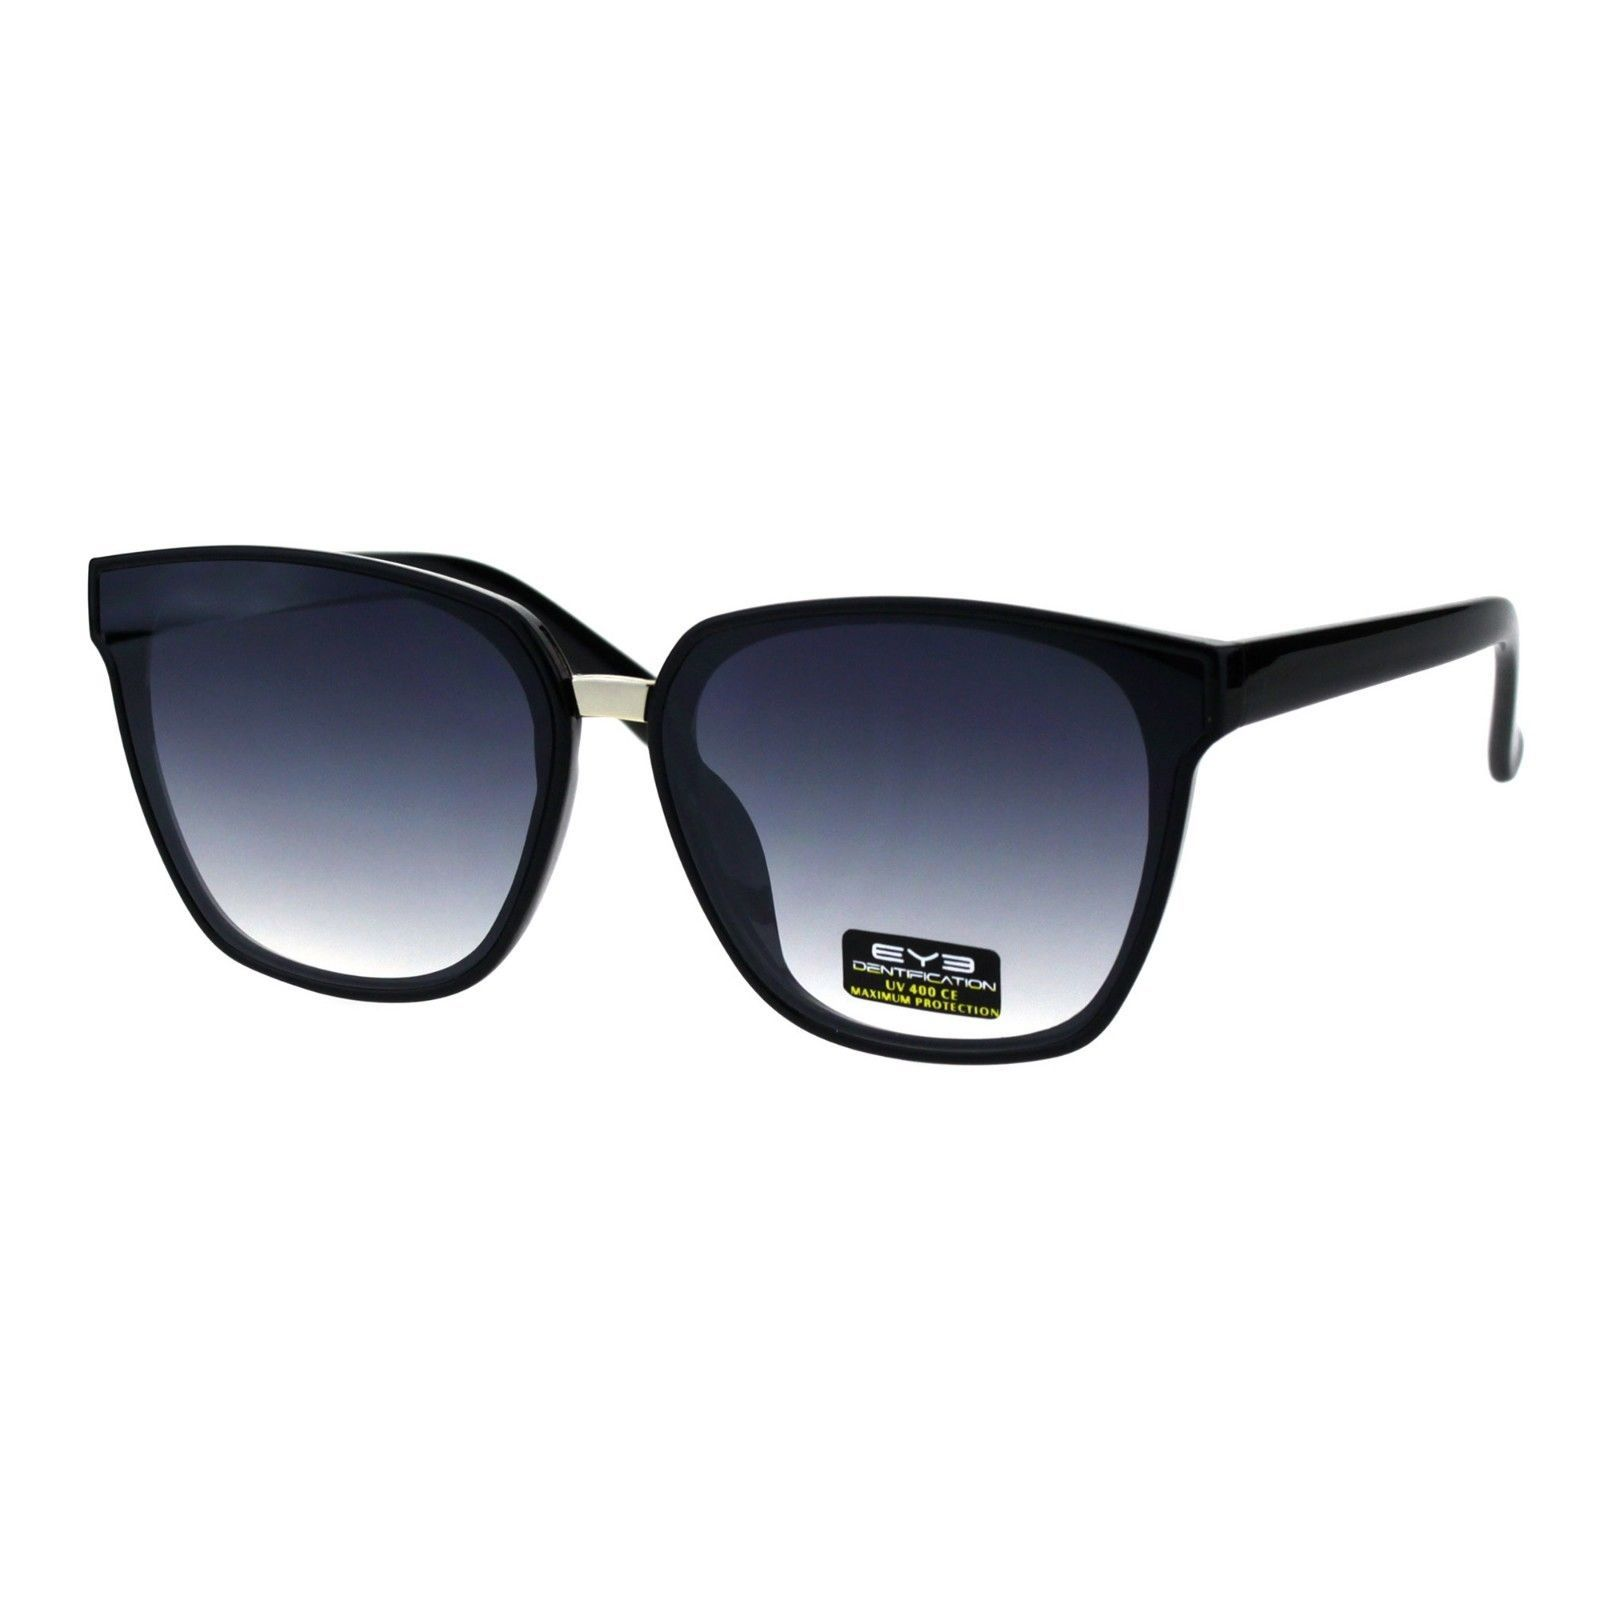 Womens Sunglasses Designer Modern Fashion Square Frame UV 400